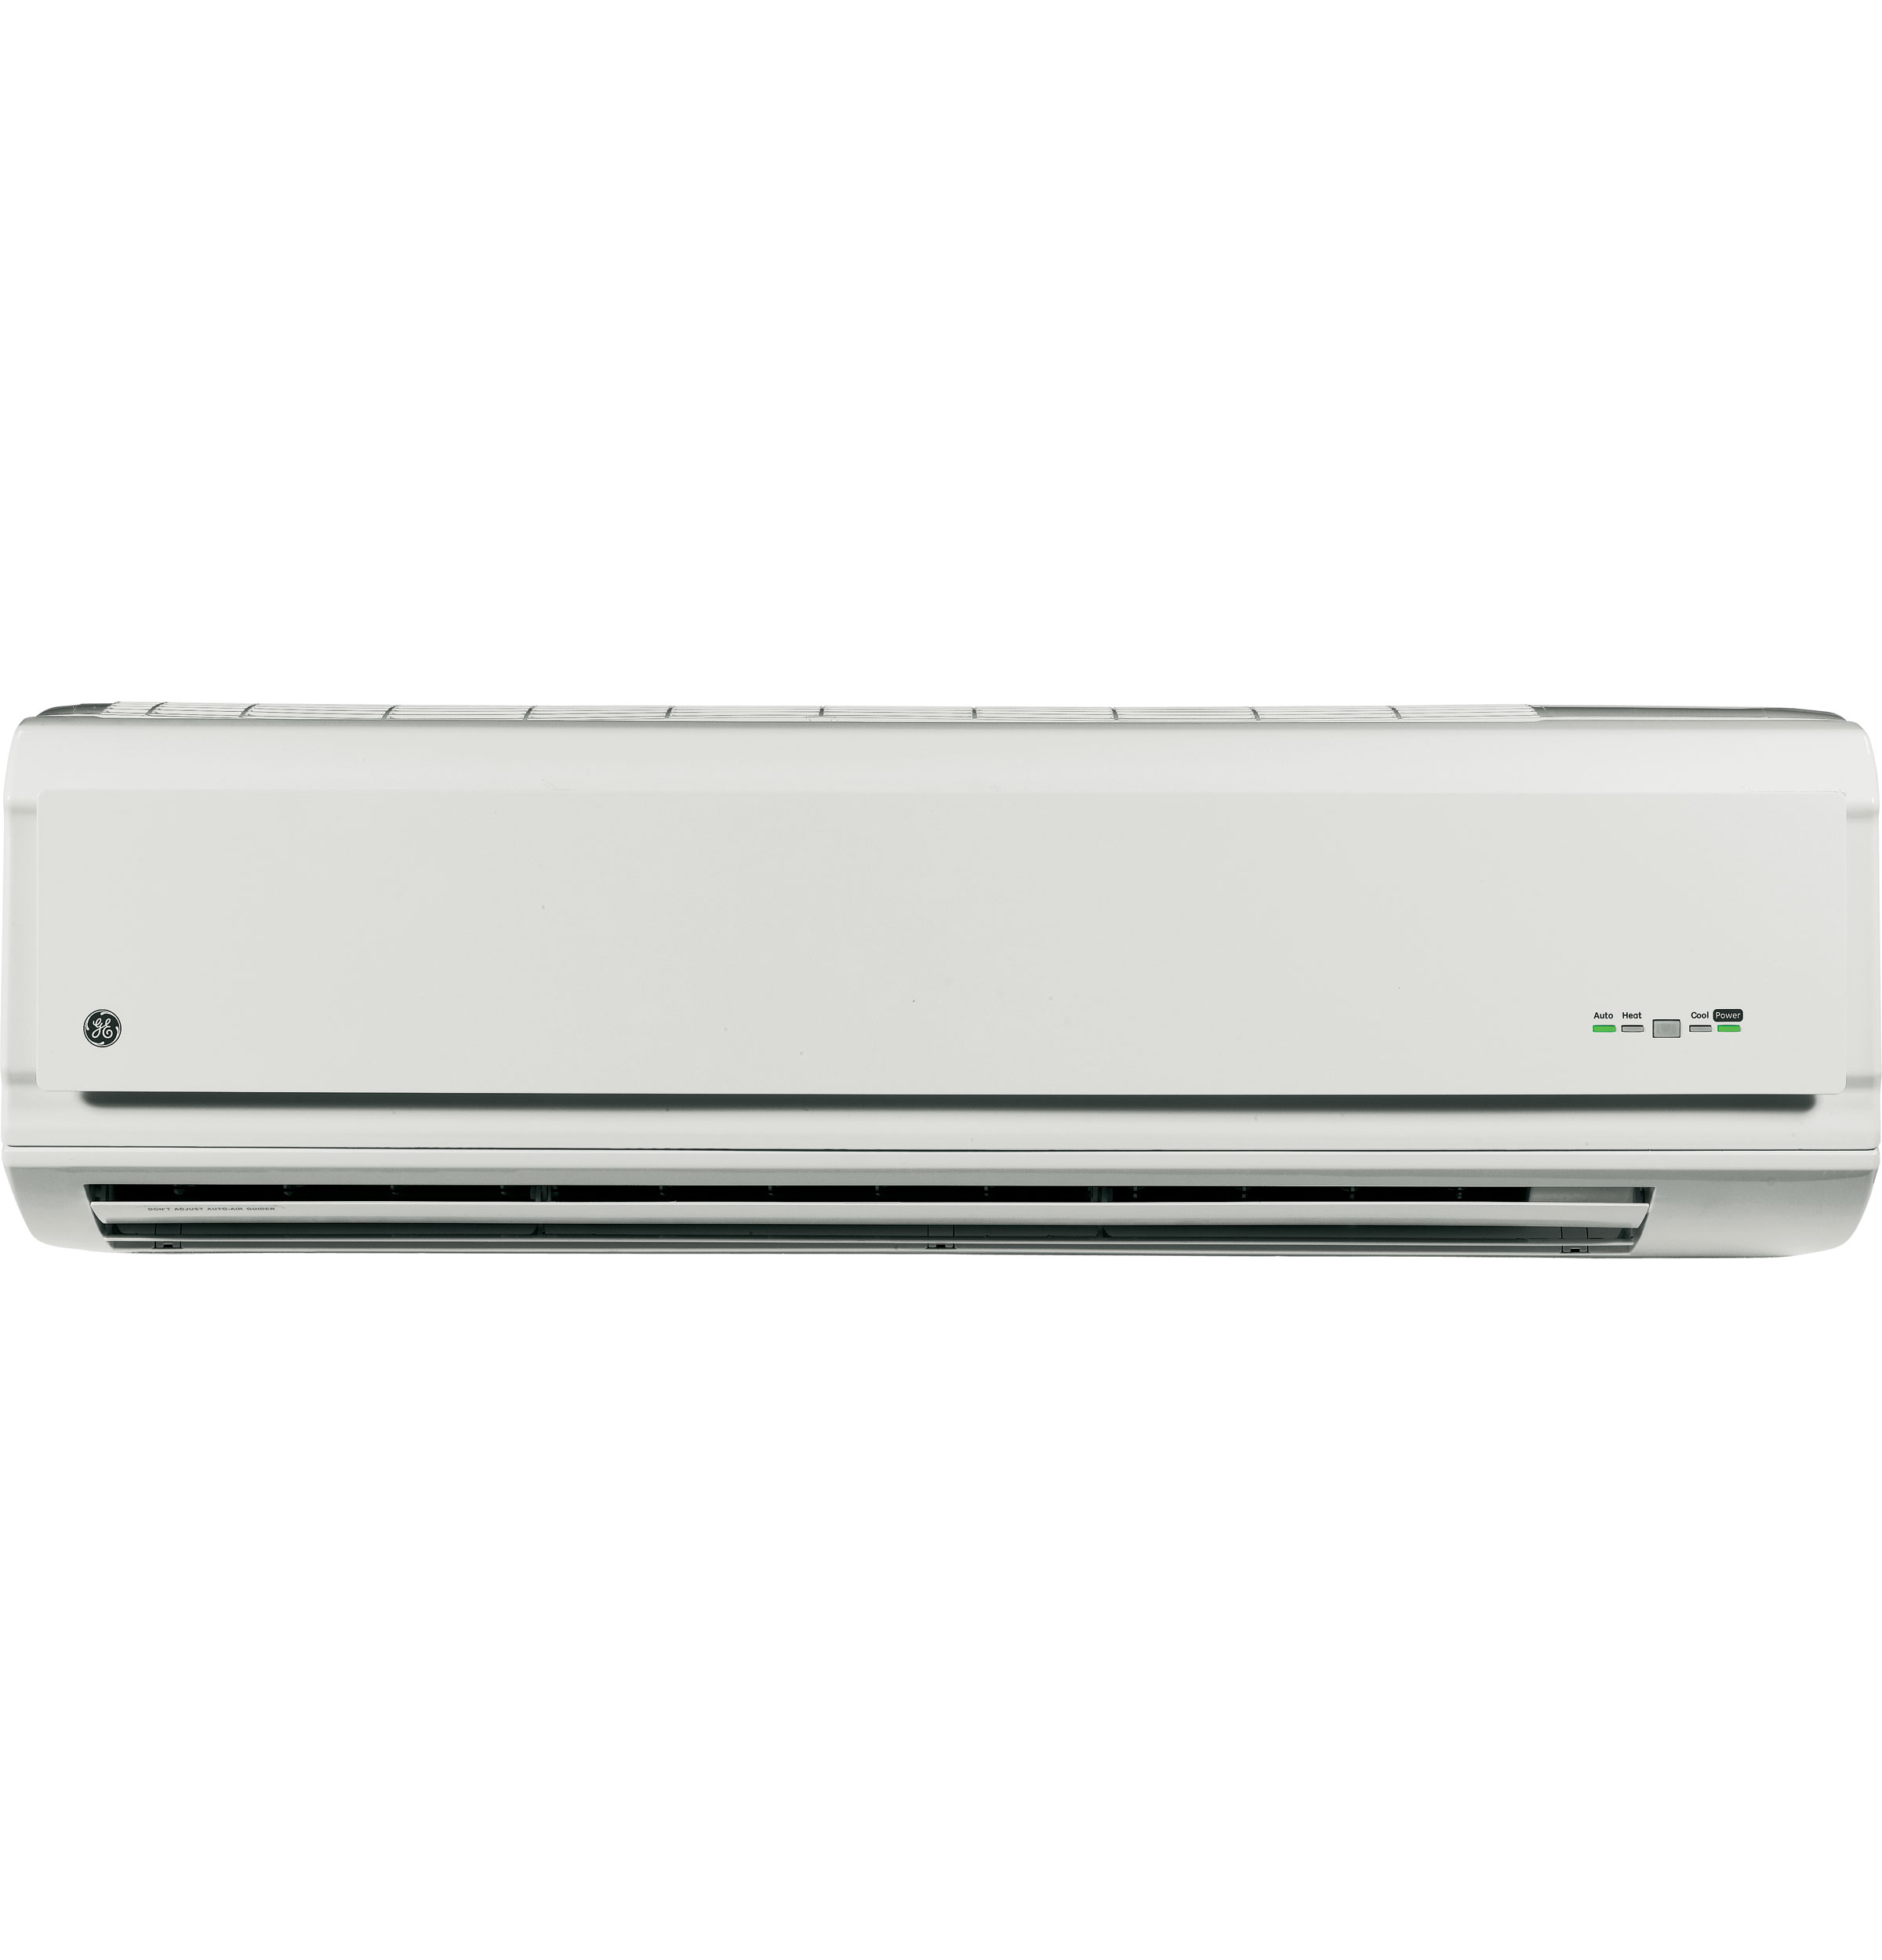 #3E8D3E AE1CD20DM GE Split System Air Conditioner Indoor Unit  Best 6623 Split System Ac Units photos with 2400x2500 px on helpvideos.info - Air Conditioners, Air Coolers and more